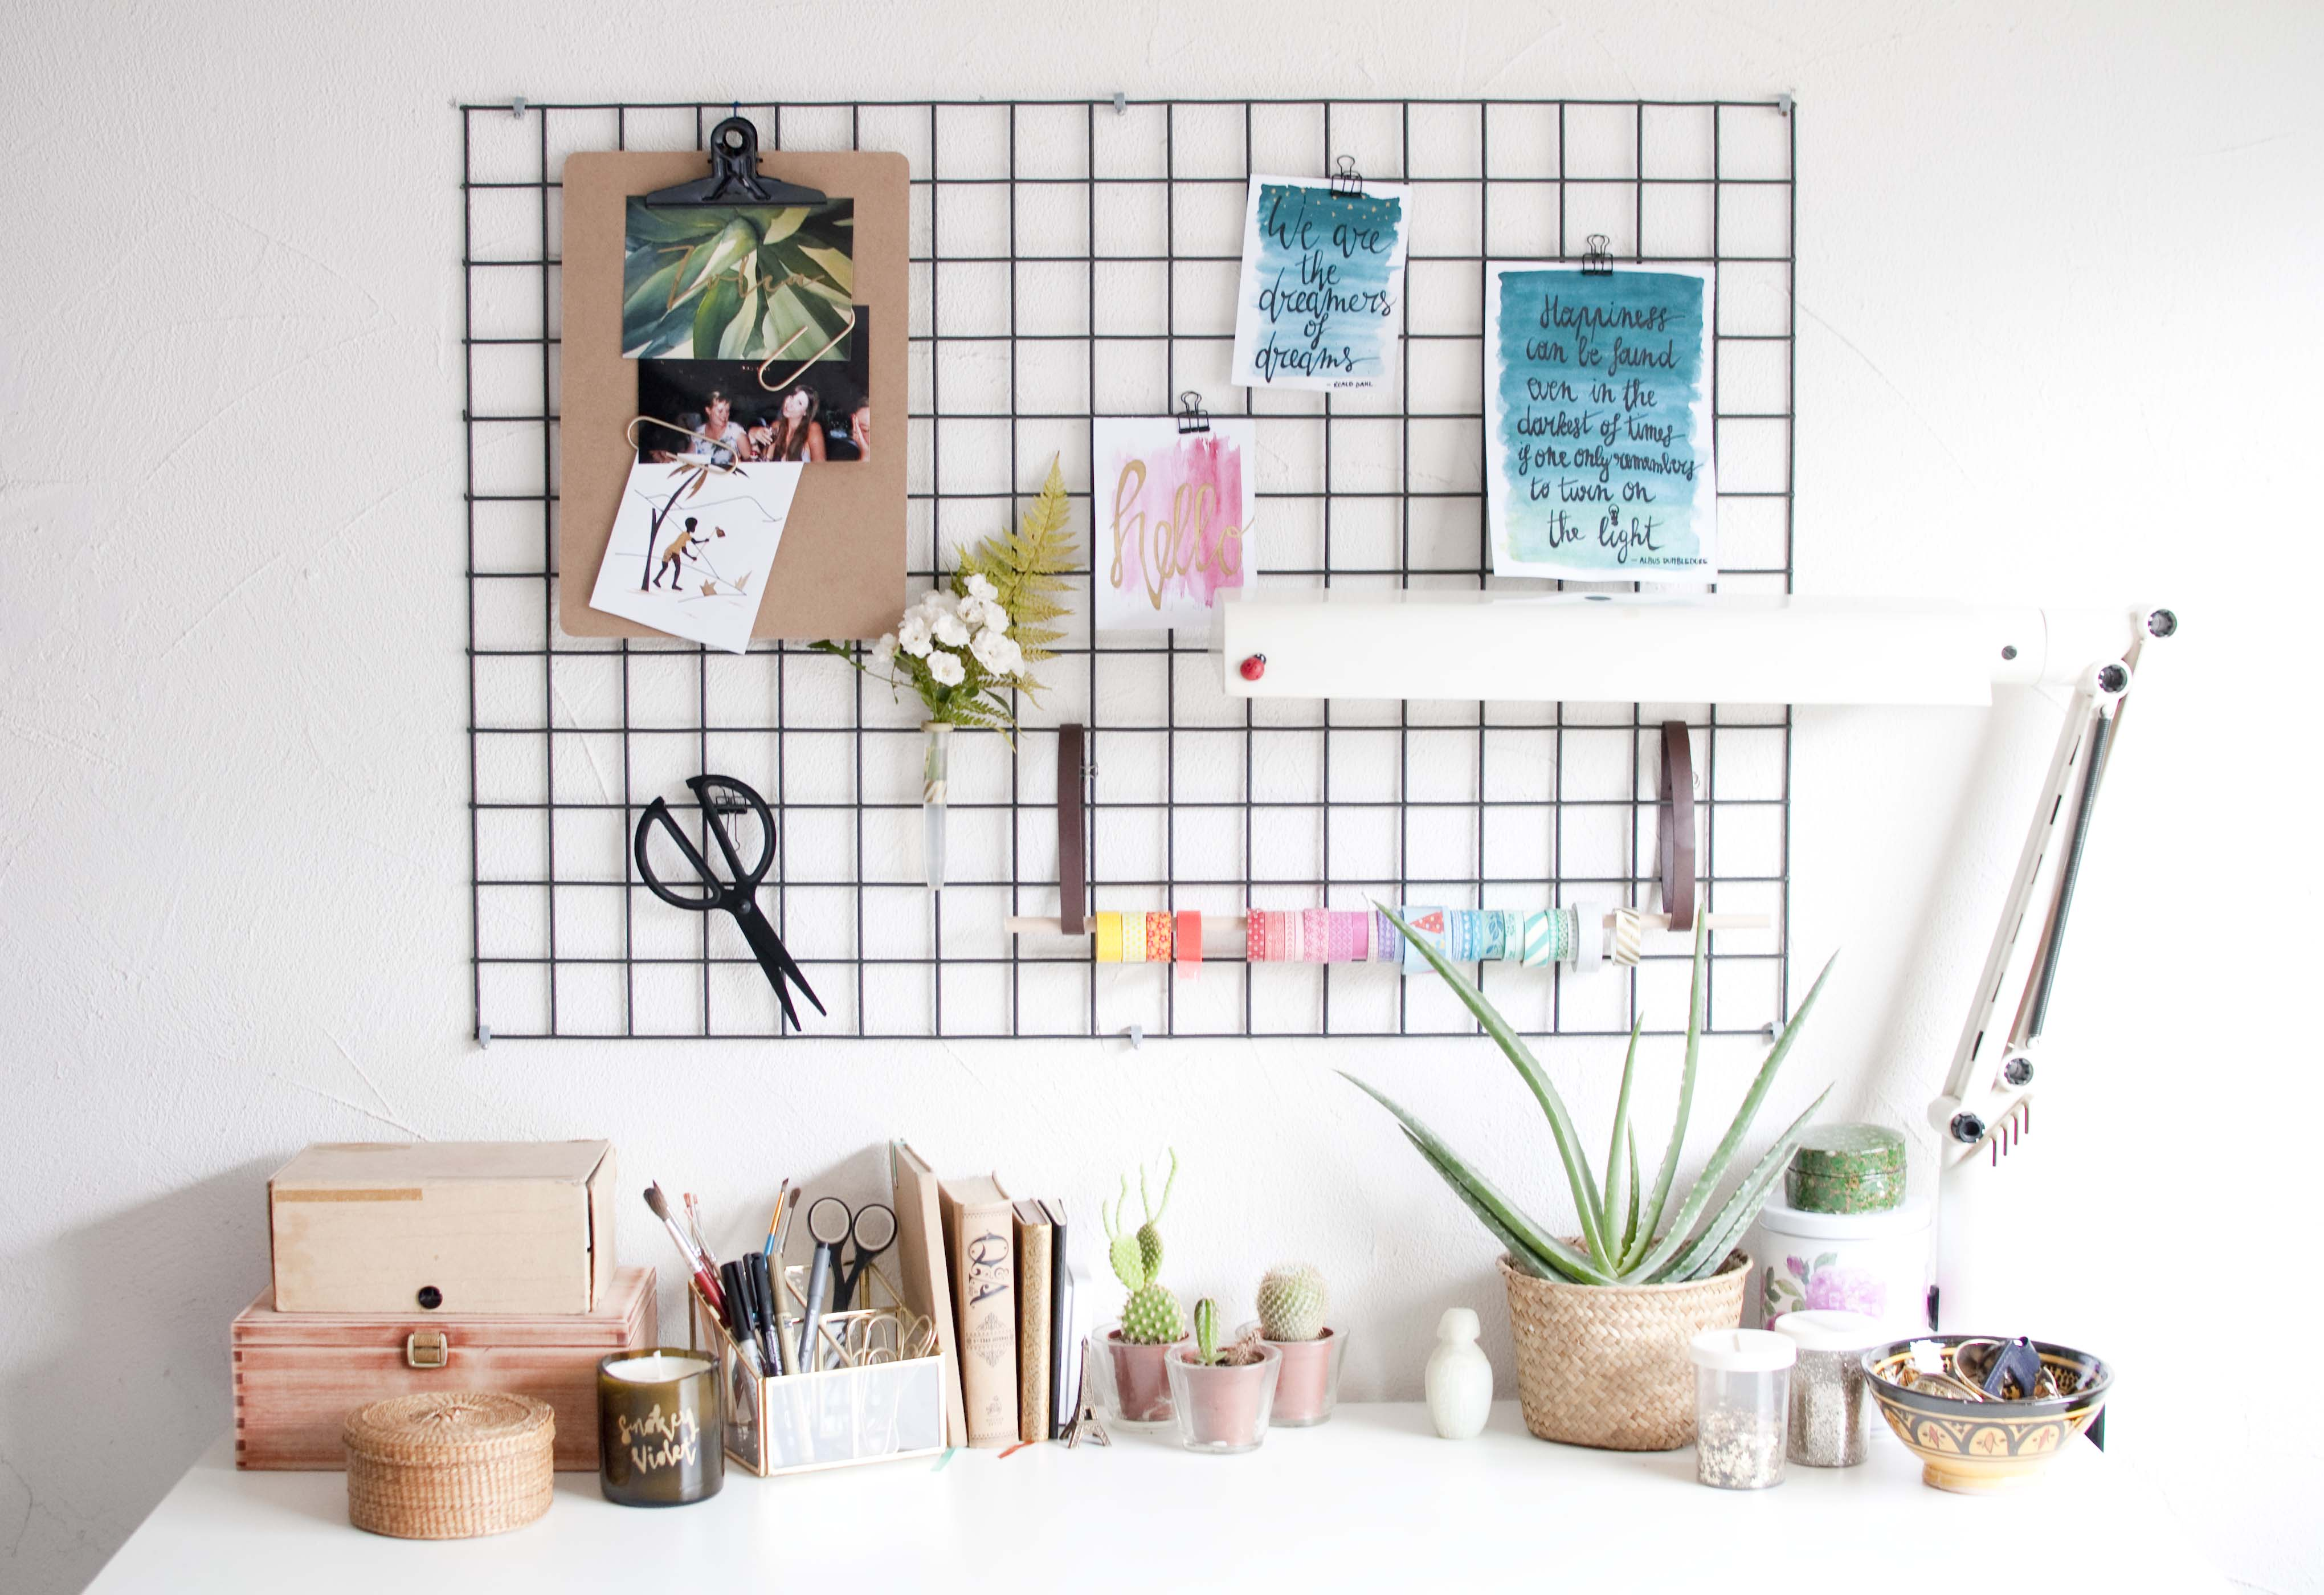 diy wall grid organisation